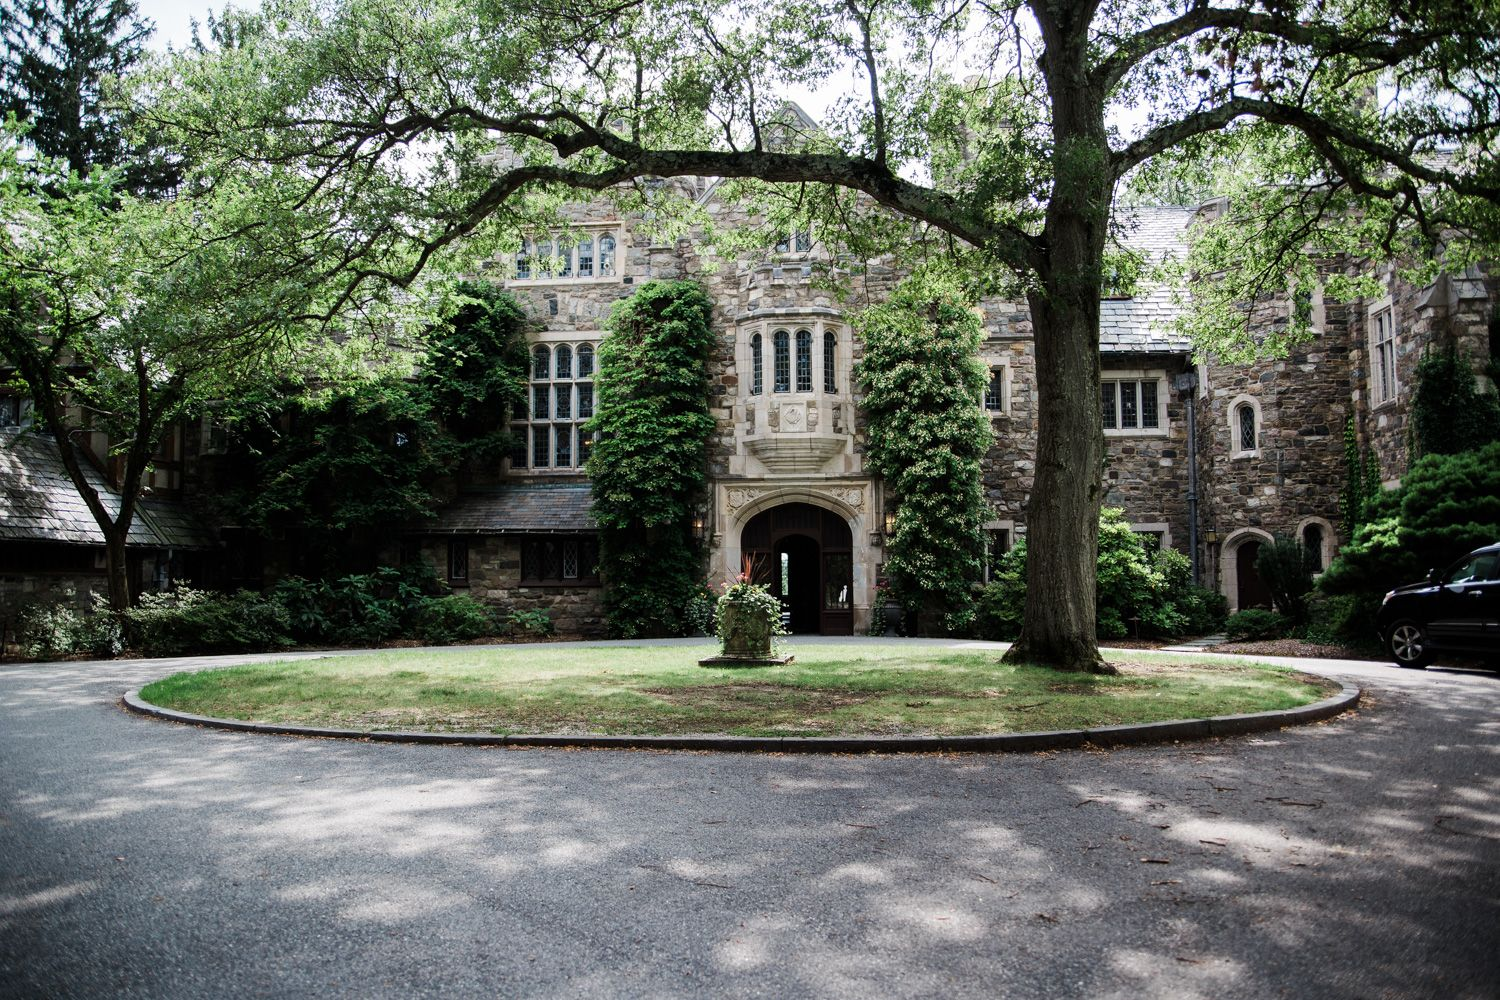 Skylands Manor, Ringwood, New Jersey